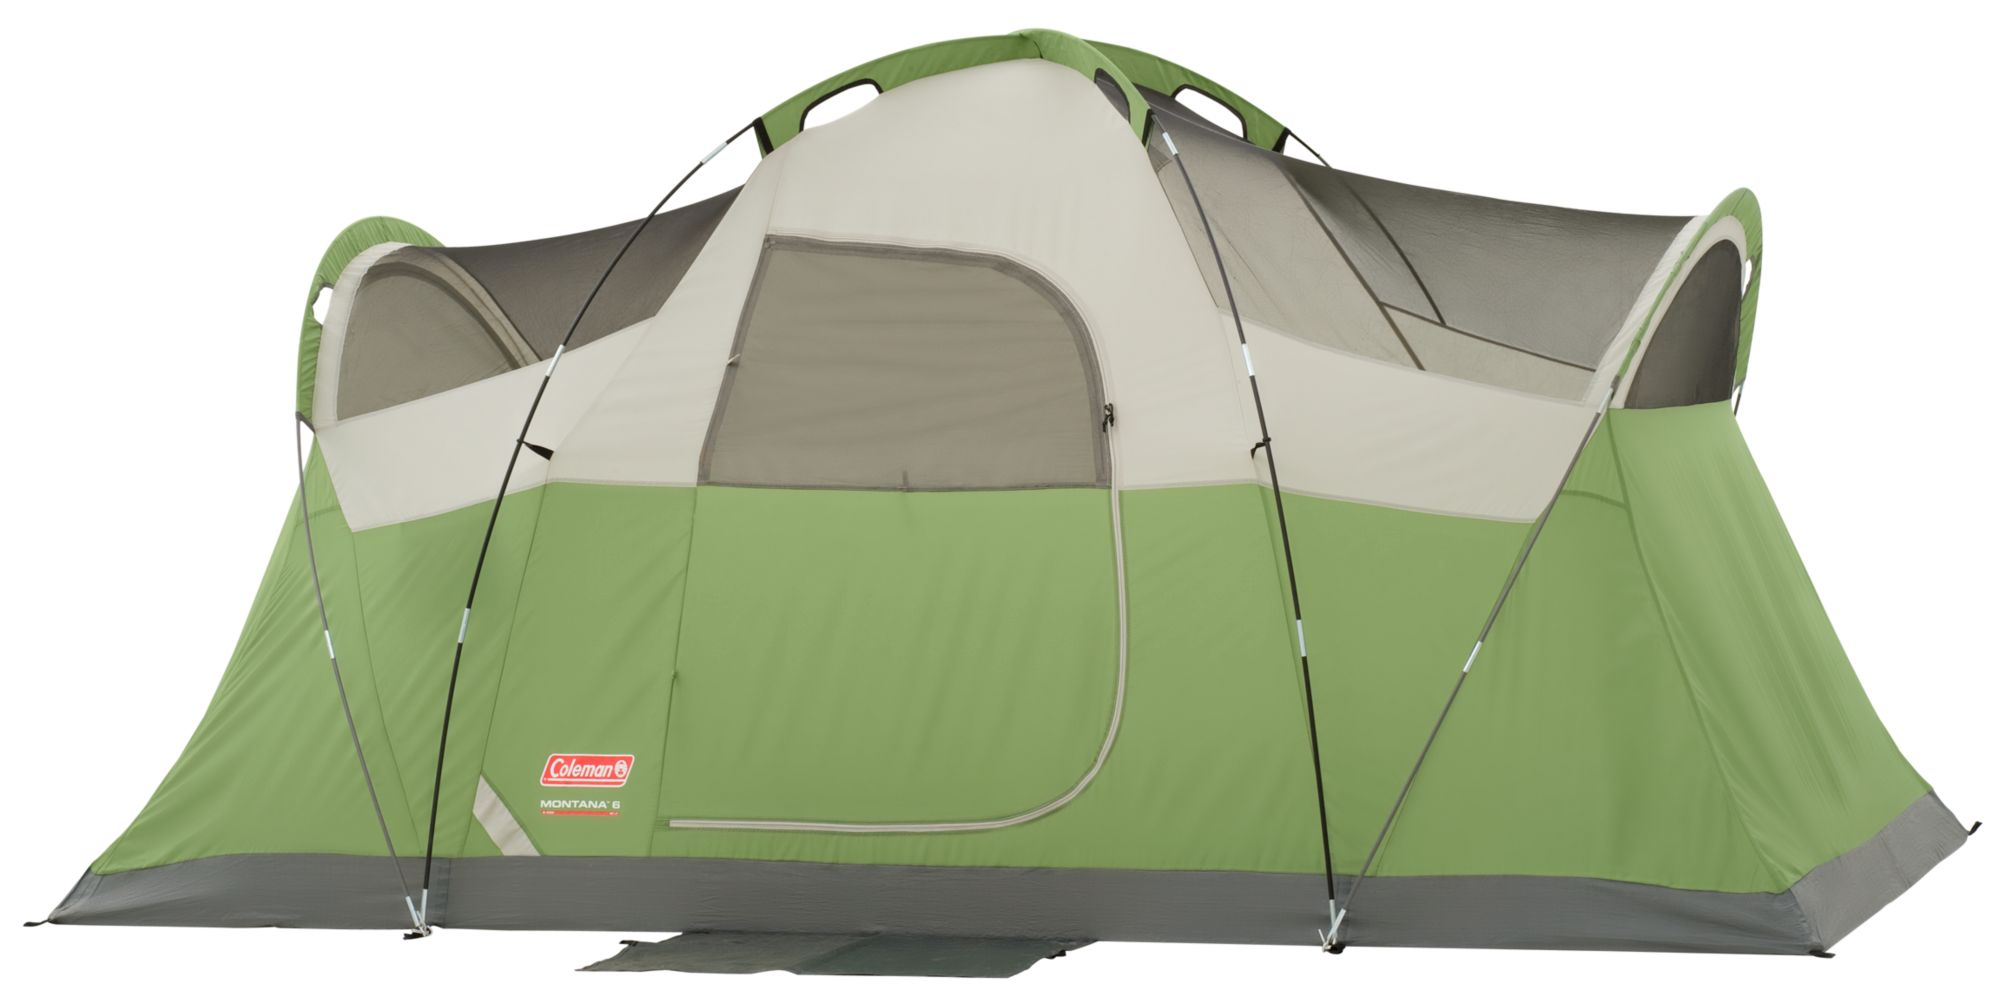 6 person tents camping tent coleman